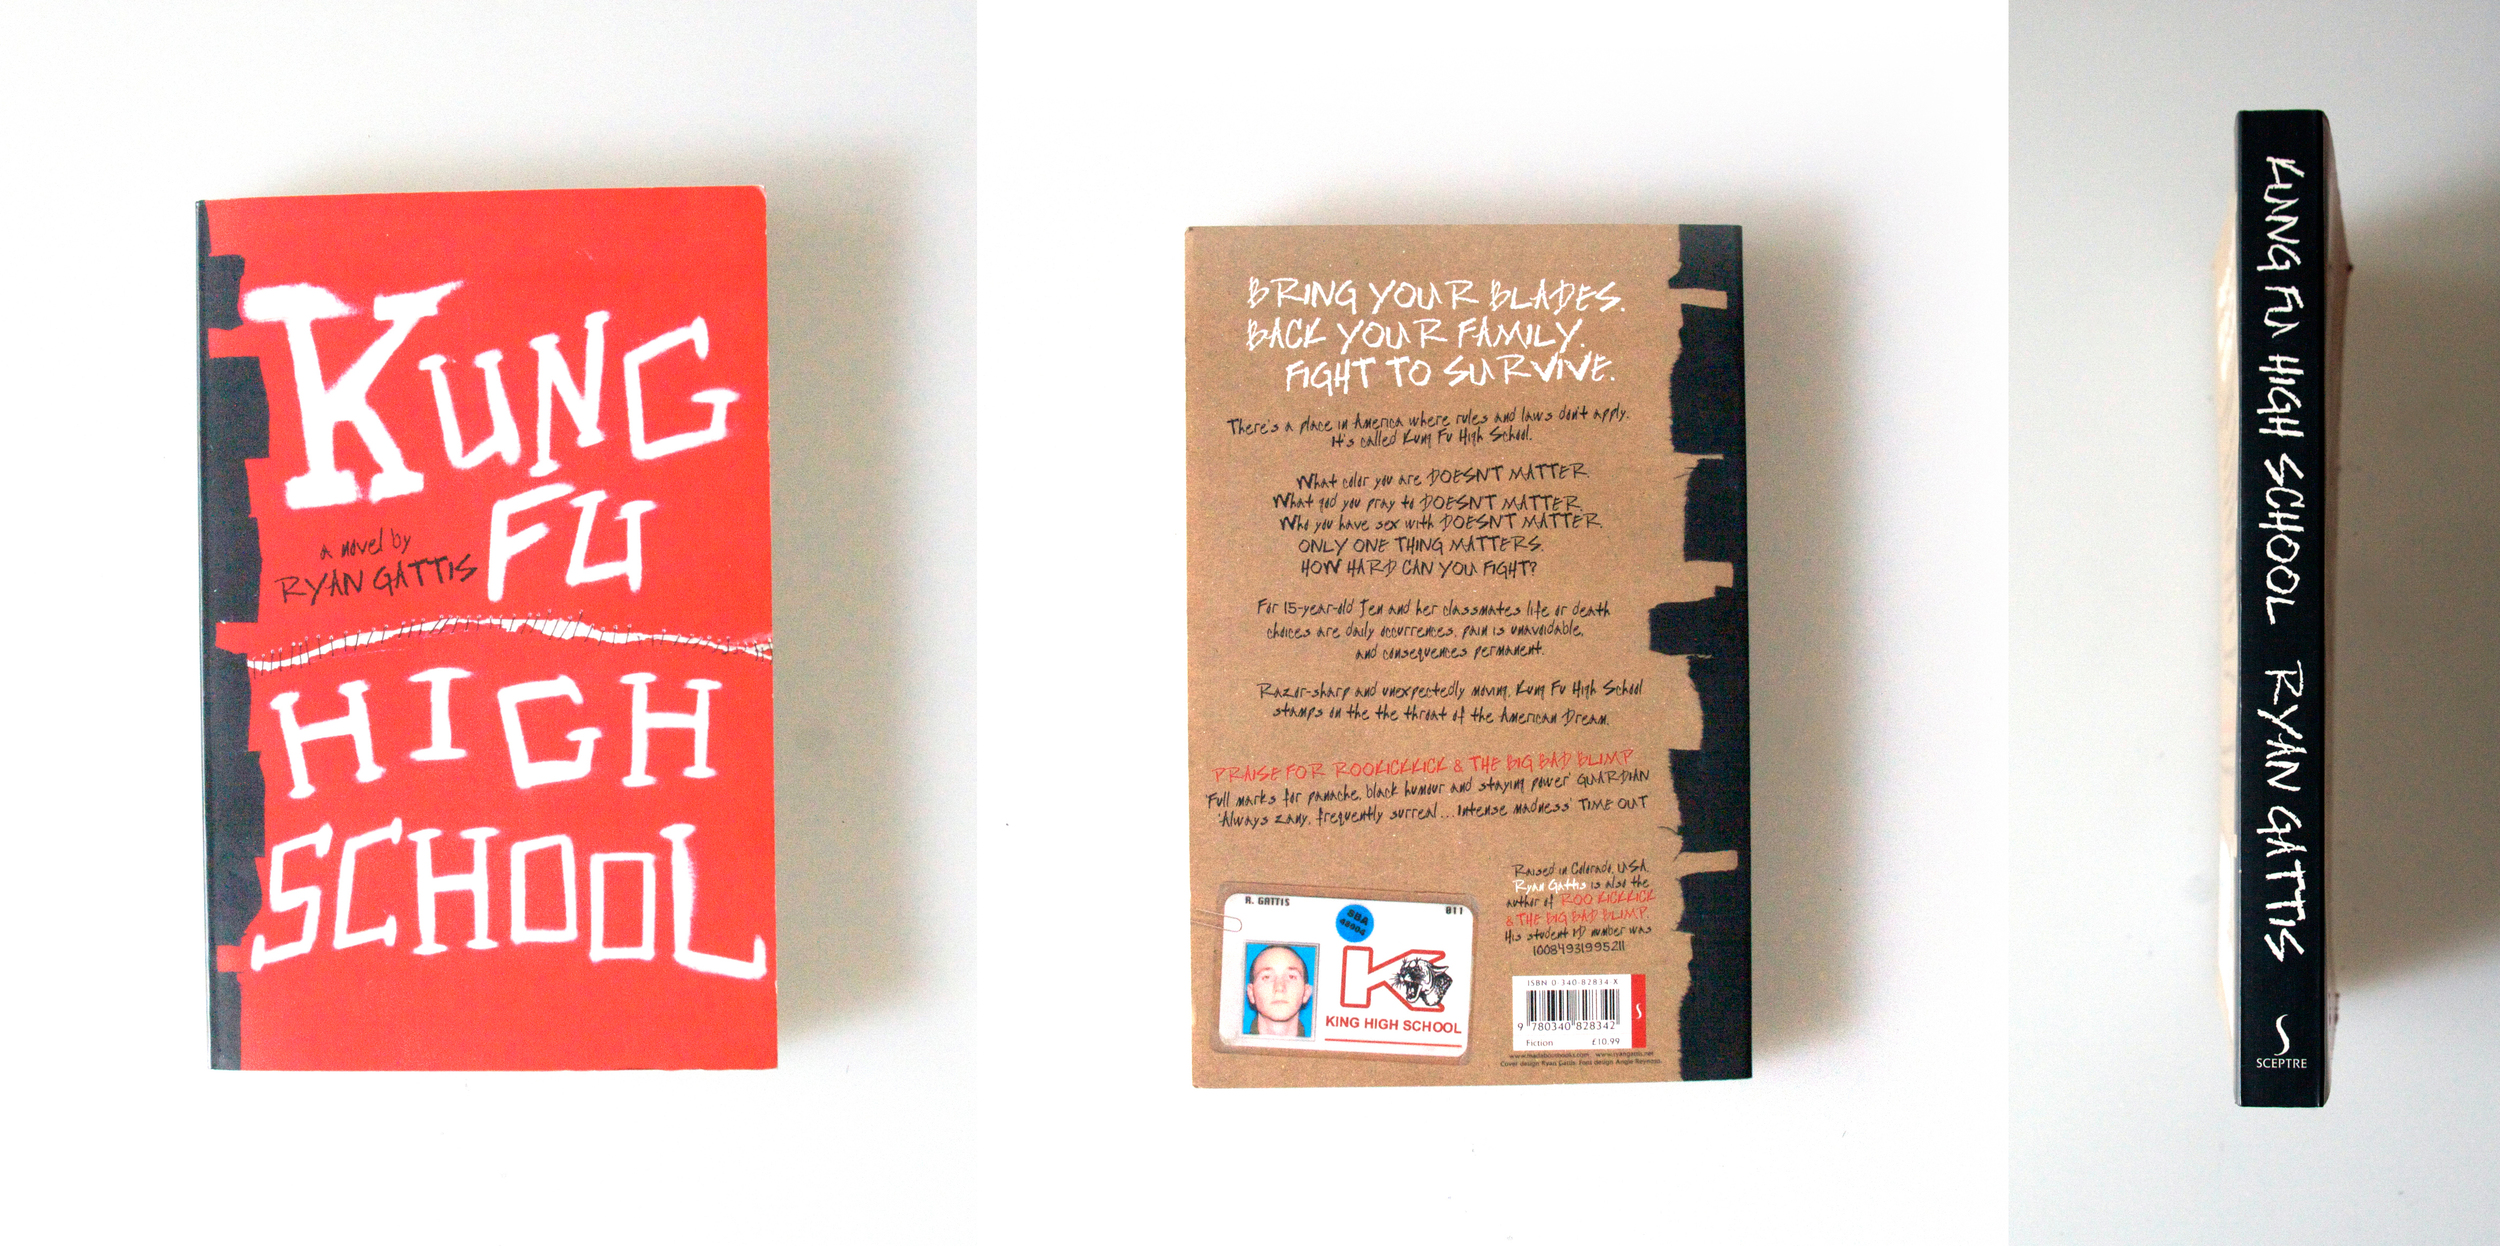 Concept & Handmade Cover Design for  Kung Fu High School  published by Sceptre (UK), 2005.